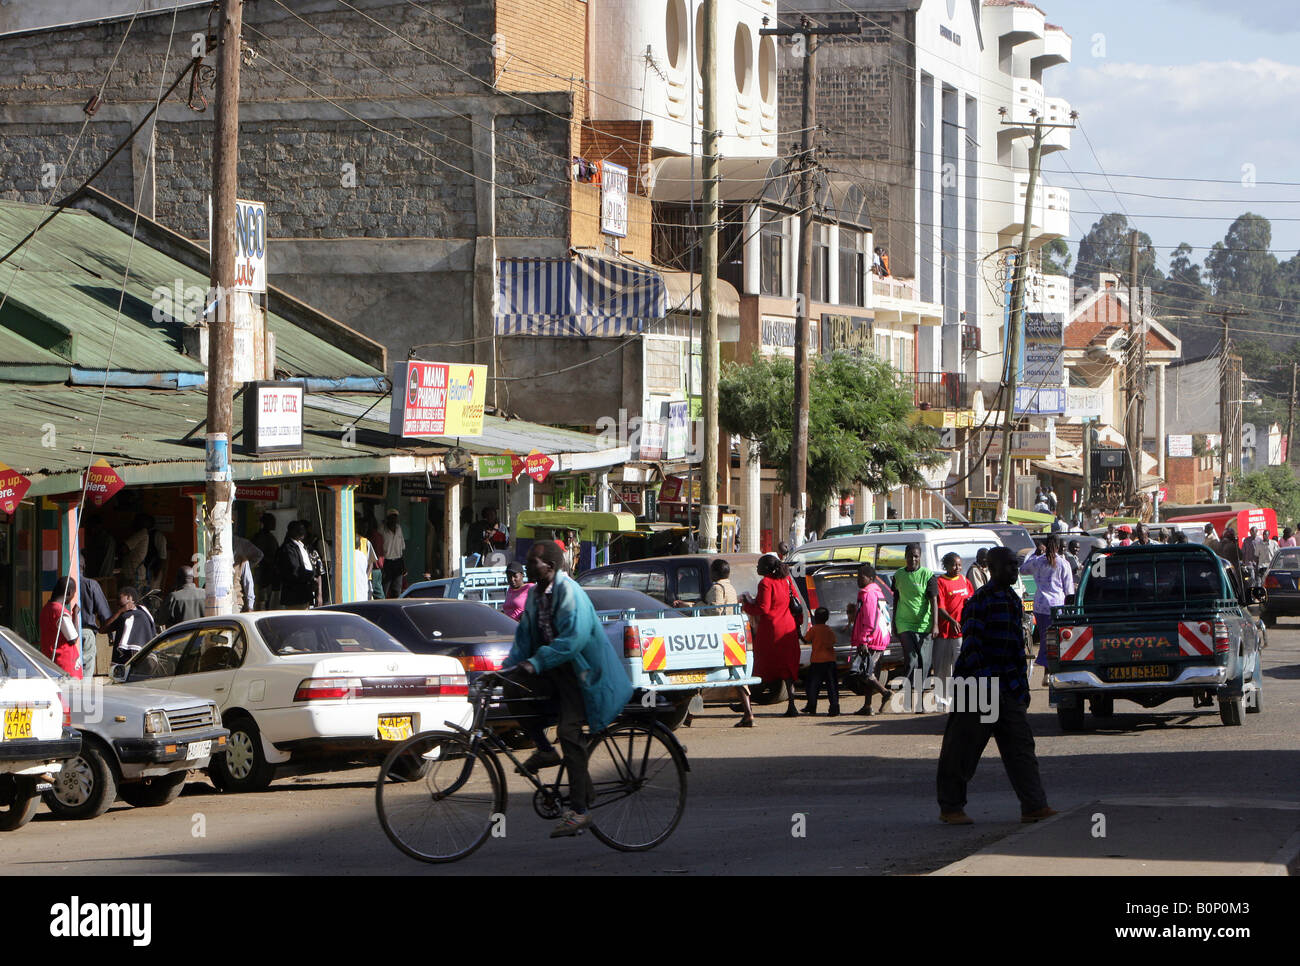 Kenya, City Of Eldoret, Rift Valley Stock Photo, Royalty Free Image ...